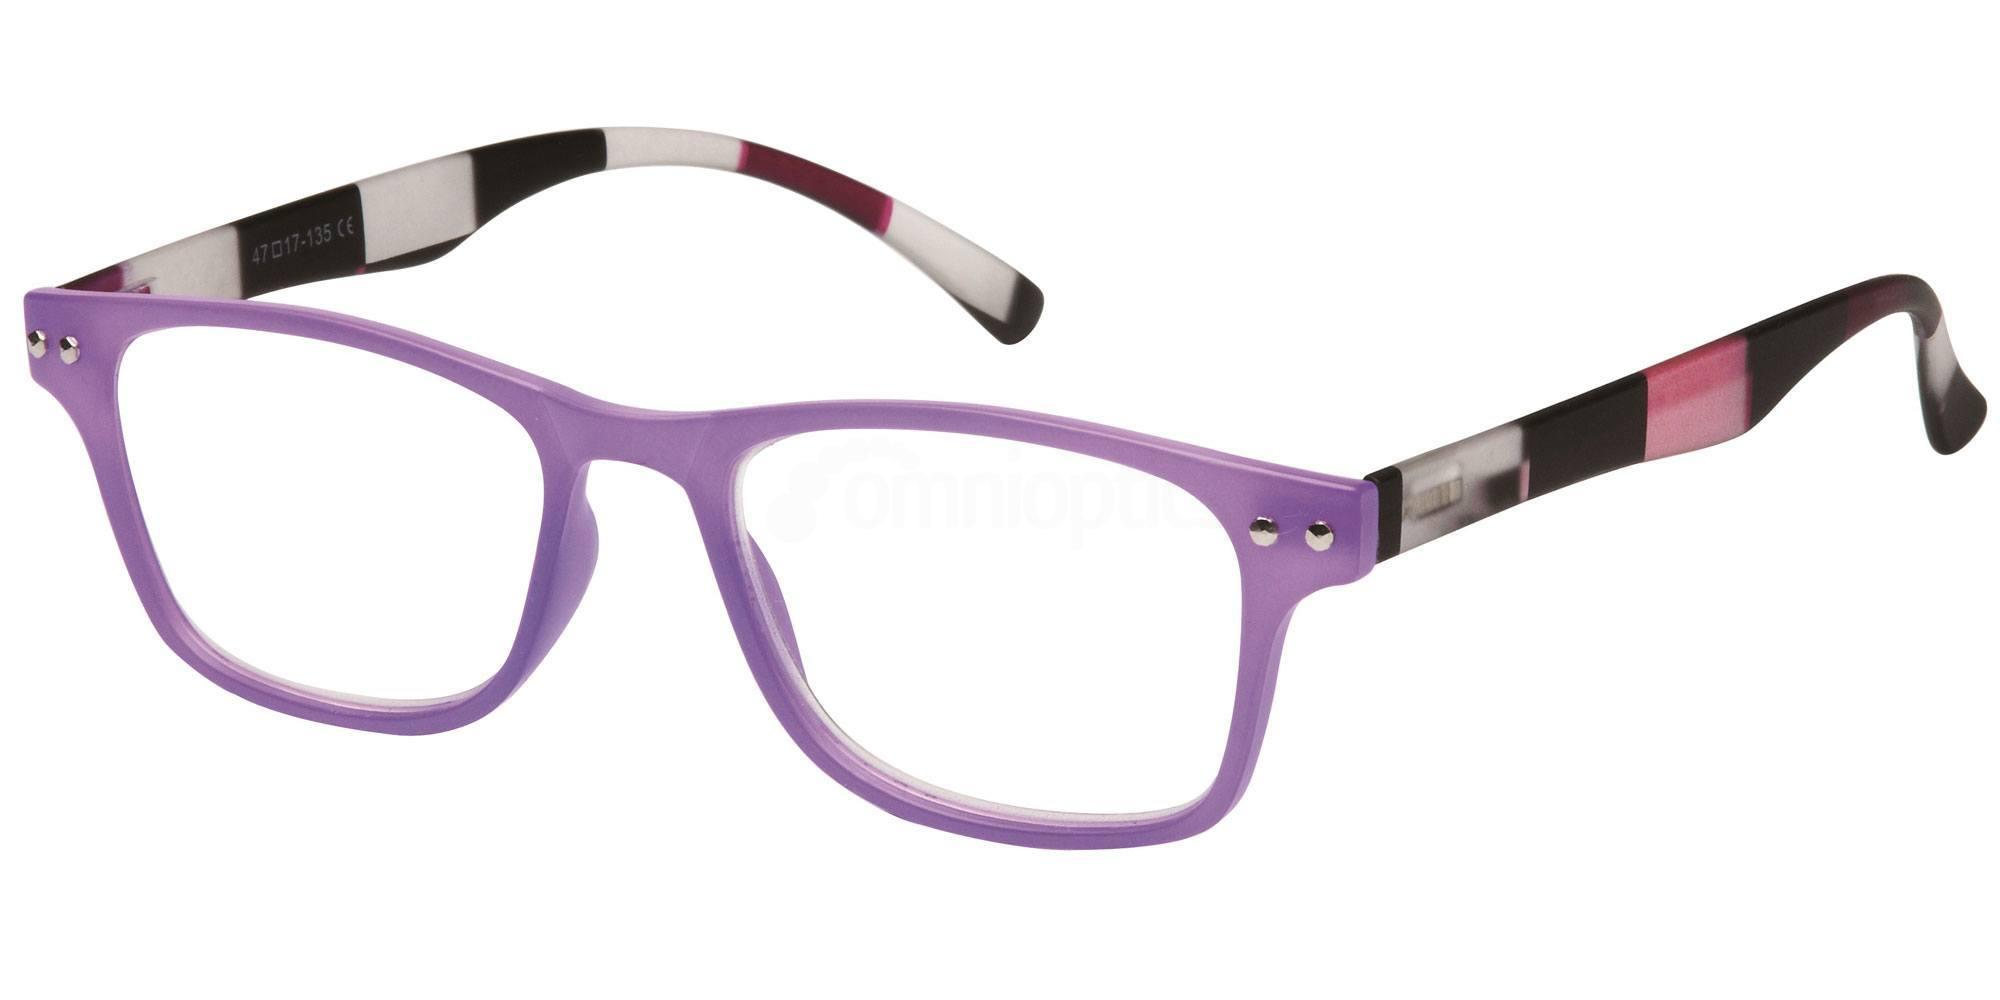 +3.50 Power Readers R15D - D: Lilac Accessories, Univo Readers